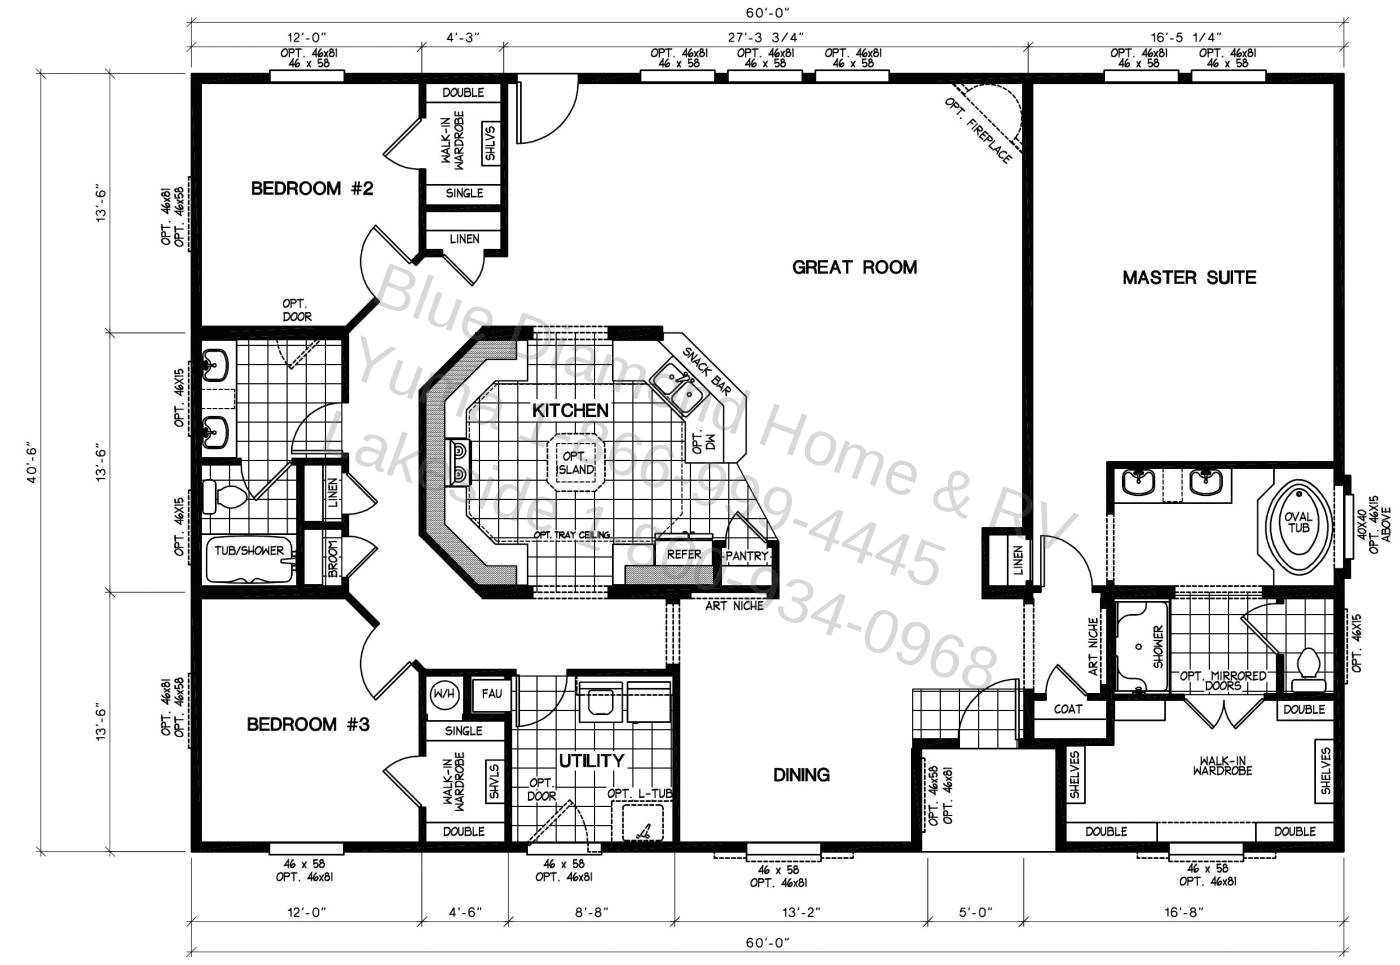 luxury new mobile home floor plans design with 4 bedroom